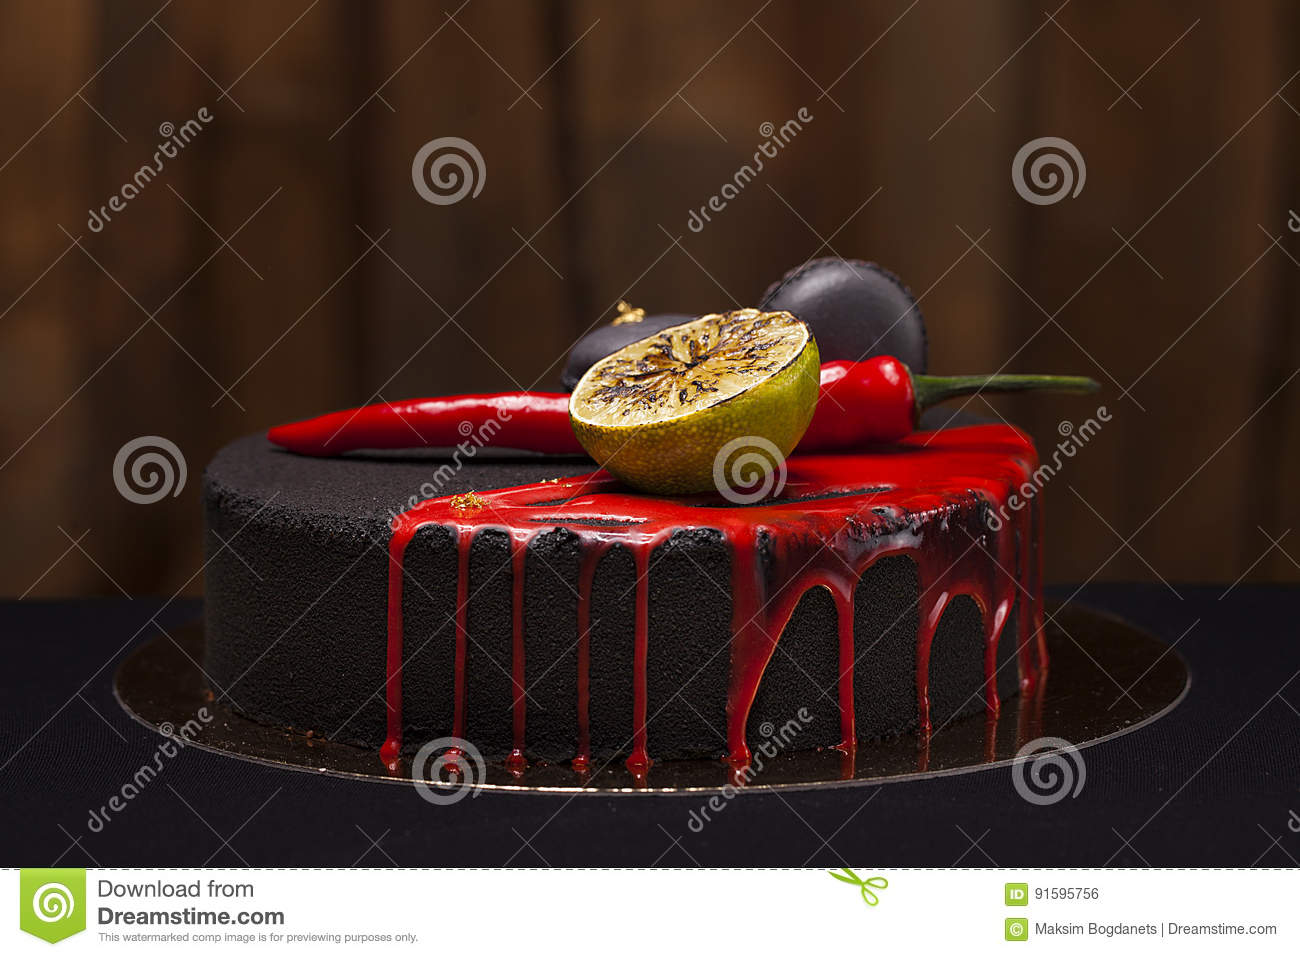 5016894ef22e Black tasty cake made by professional chef